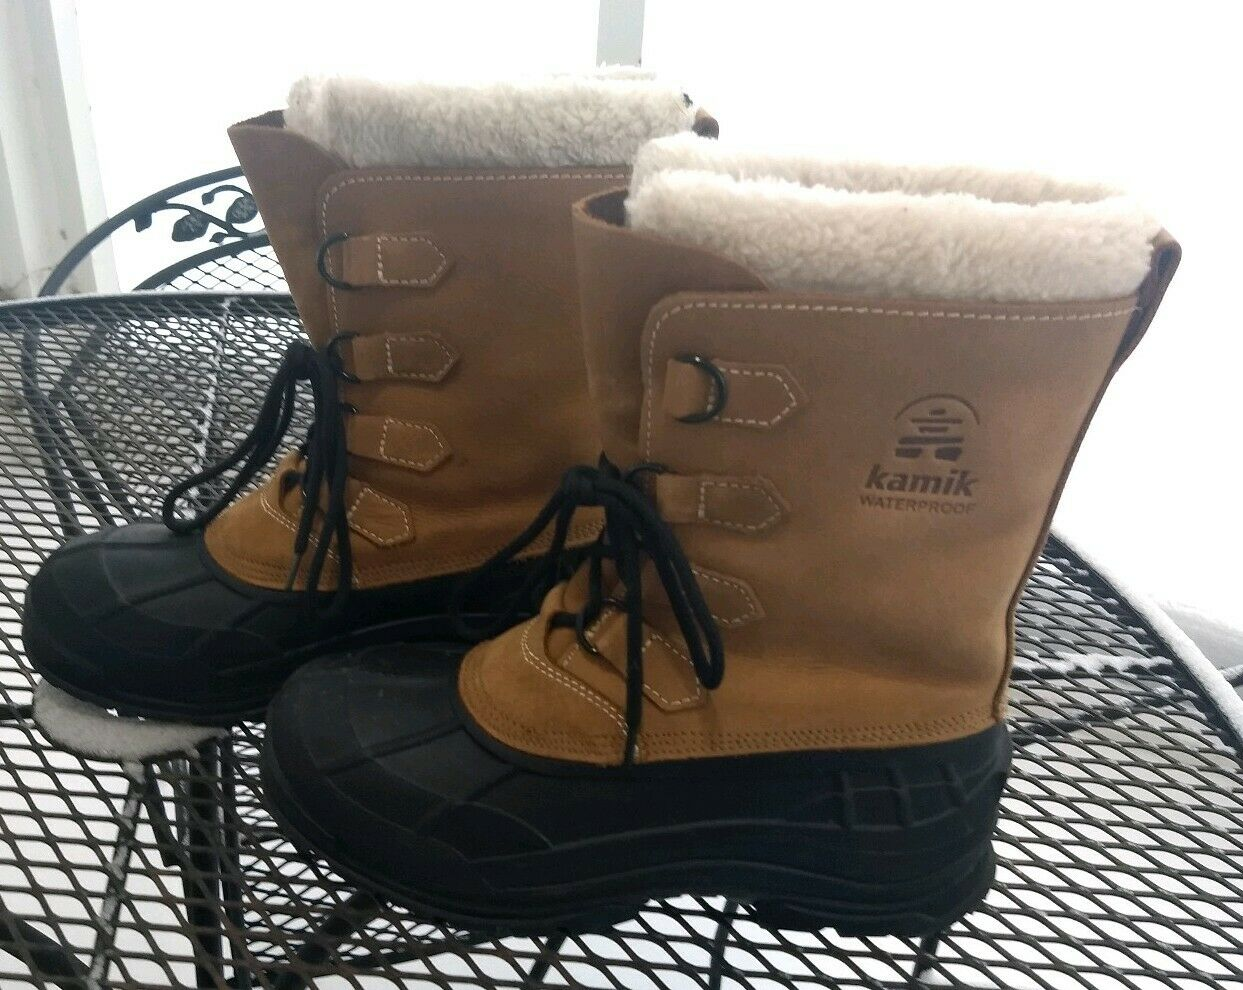 Kamik Alborg Tan Man's Boots   GOOD QUALITY BARELY USED BOOTS